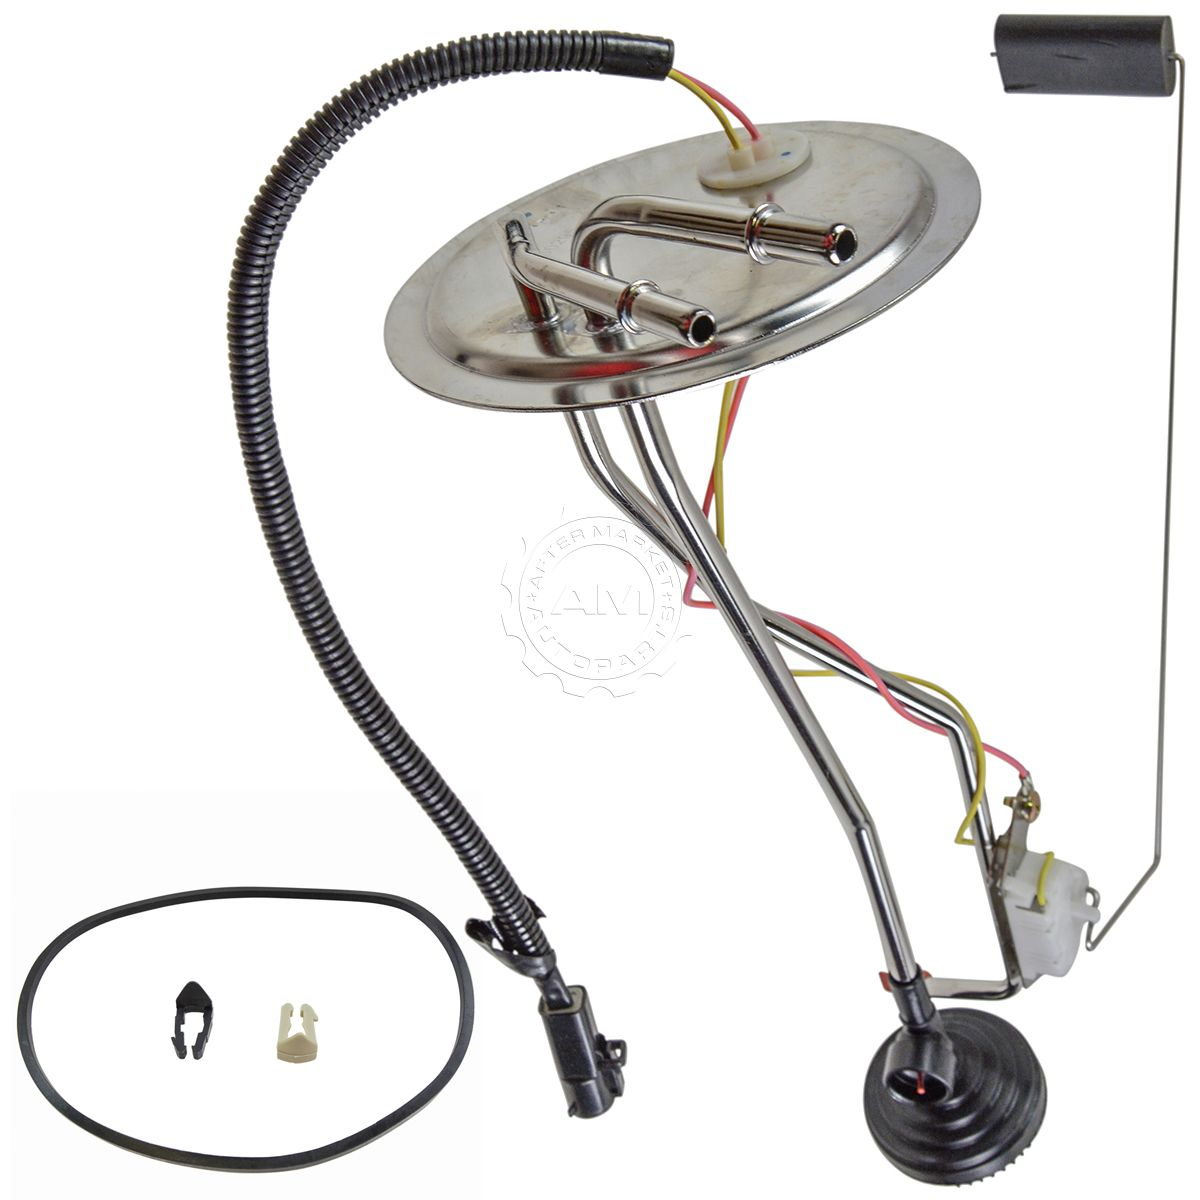 Delphi Fl0266 Fuel Tank Sending Unit Assembly For Ford Super Duty Wiring Pickup Truck